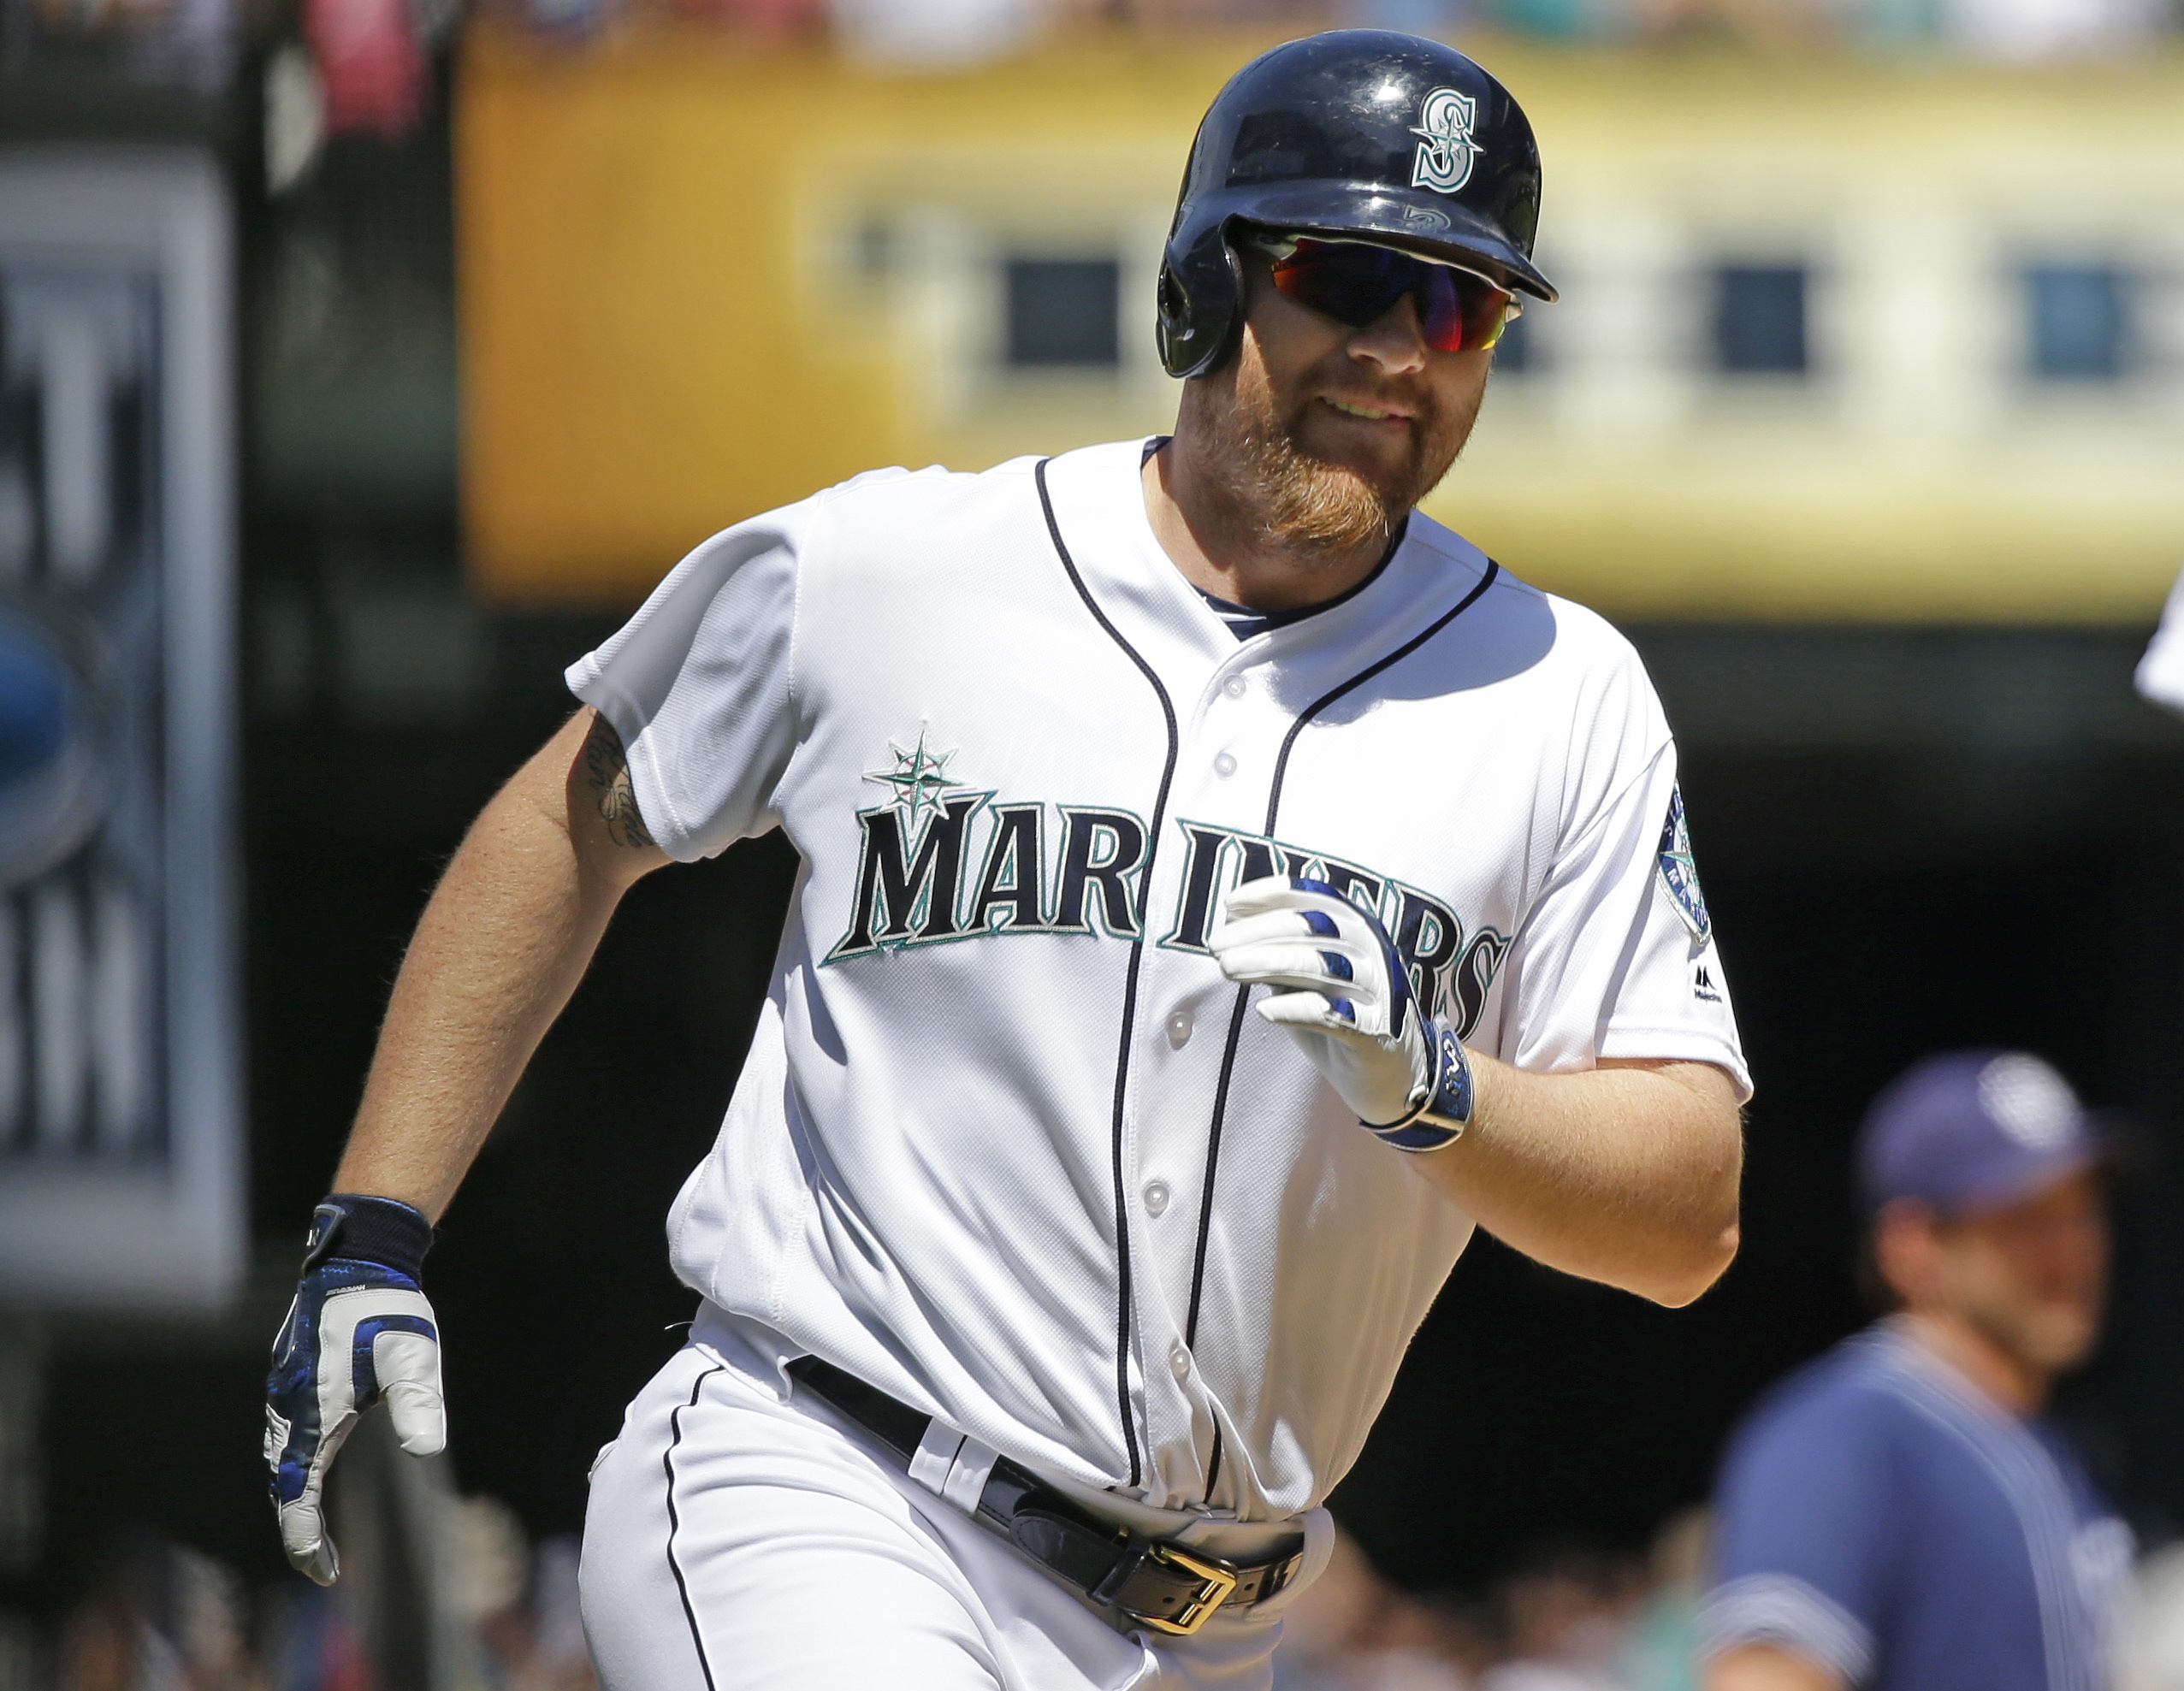 Seattle Mariners' Adam Lind rounds the bases after he hit a two-run home run in the fifth inning of a baseball game against the San Diego Padres to score Kyle Seager, Tuesday, May 31, 2016, in Seattle. (AP Photo/Ted S. Warren)